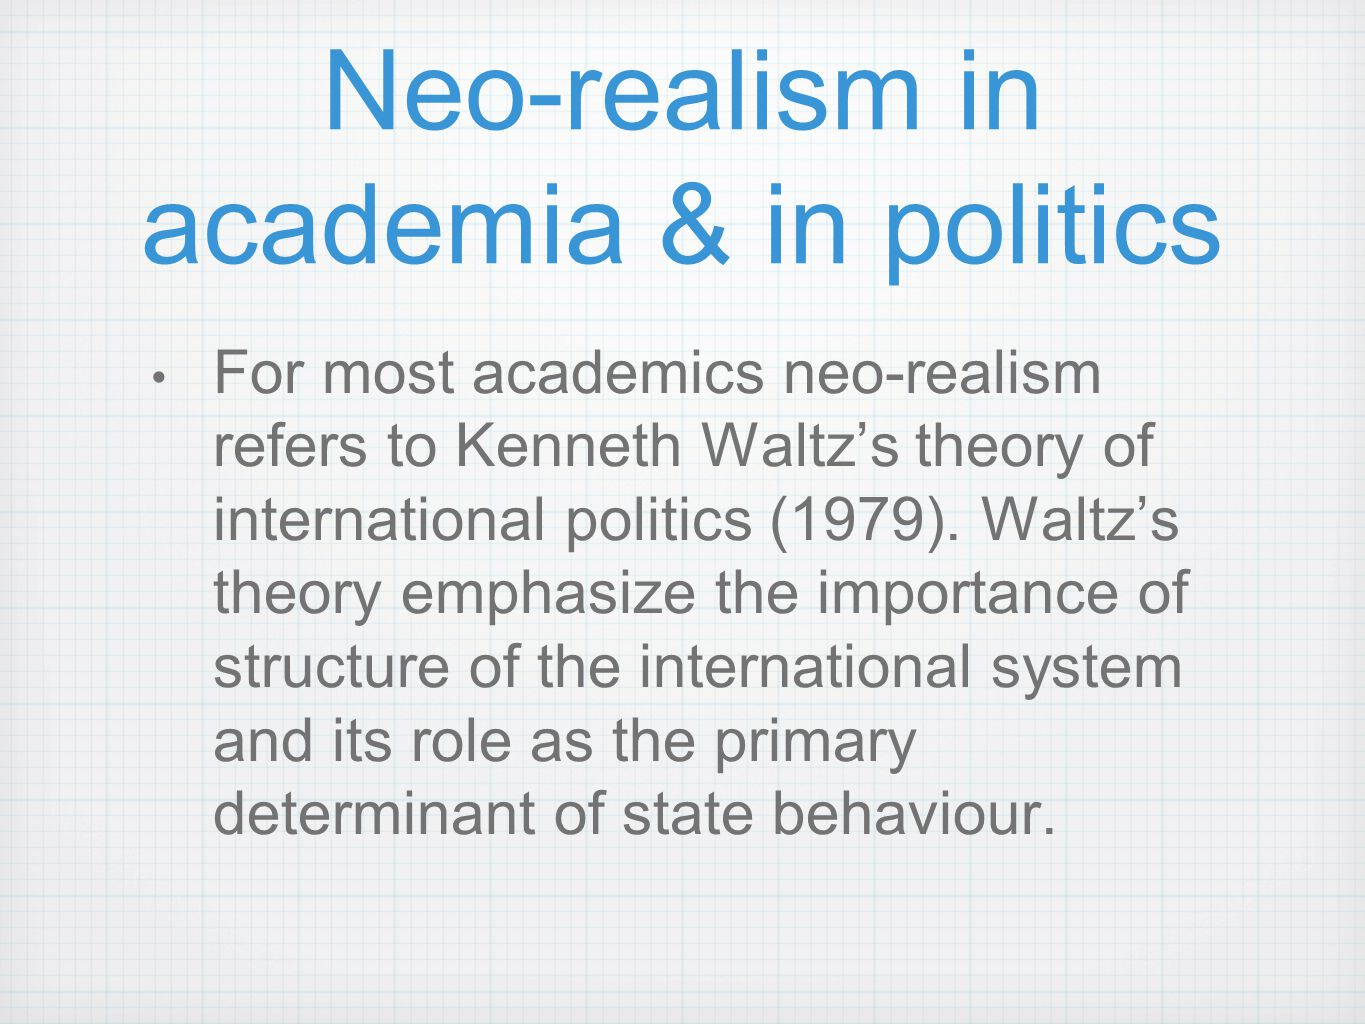 Neo-realism in academia & in politics